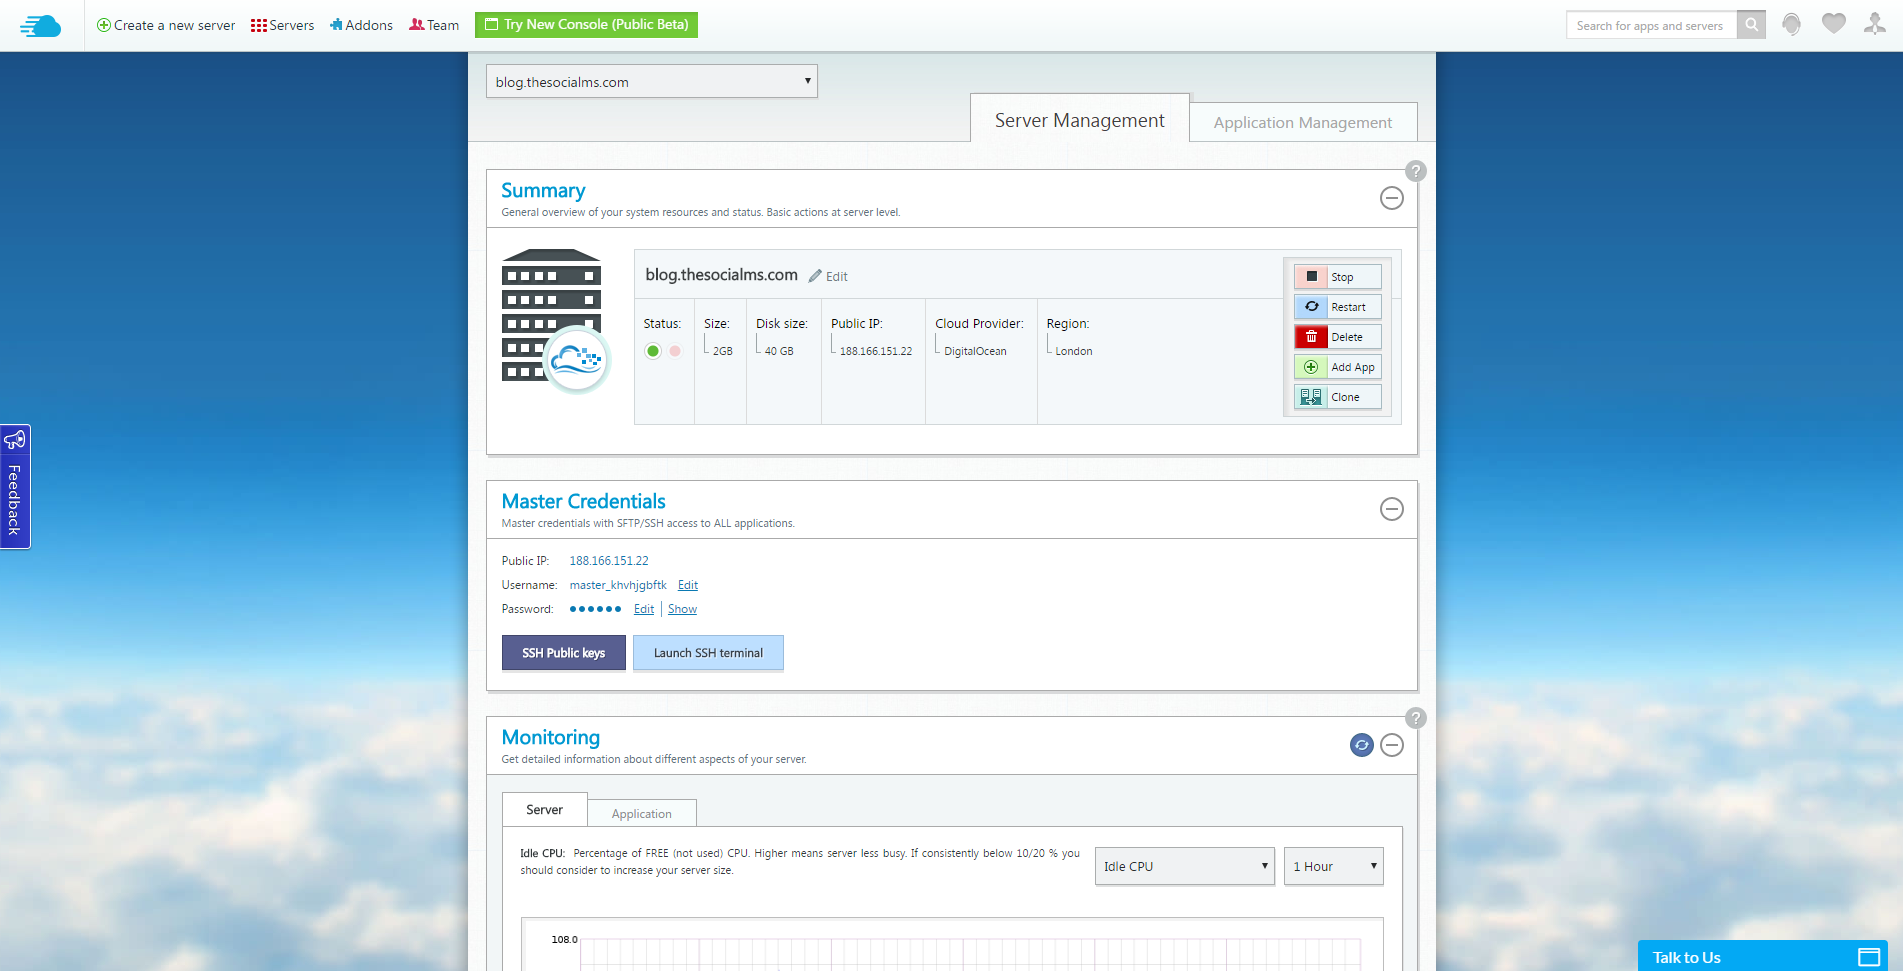 Cloudways user interface allows for easy to understand server management.